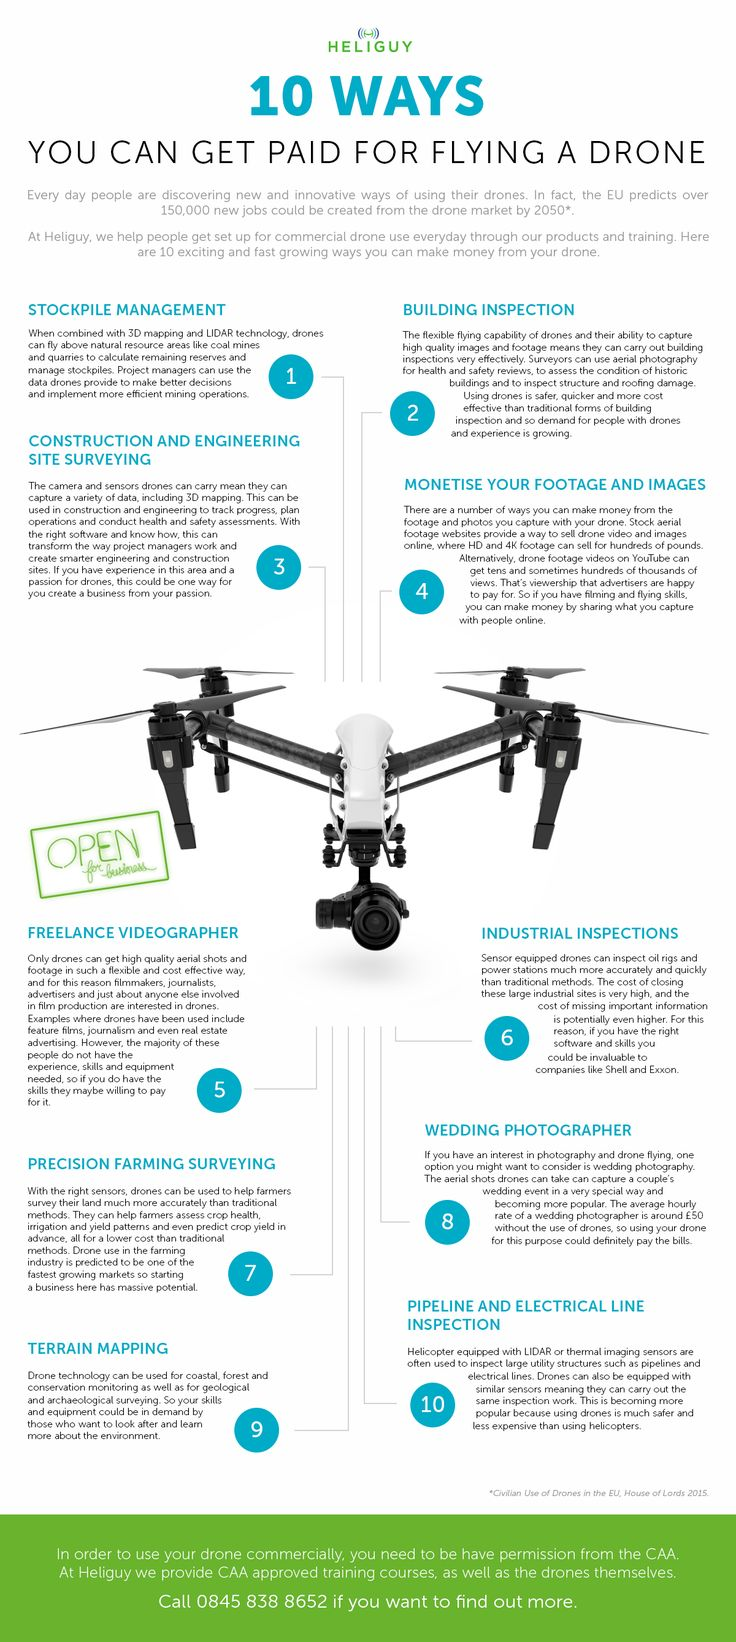 10 Ways You Can Get Paid For Flying A Drone Learn more here: http://www.heliguy.com/blog/2015/12/29/make-money-flying-a-drone/